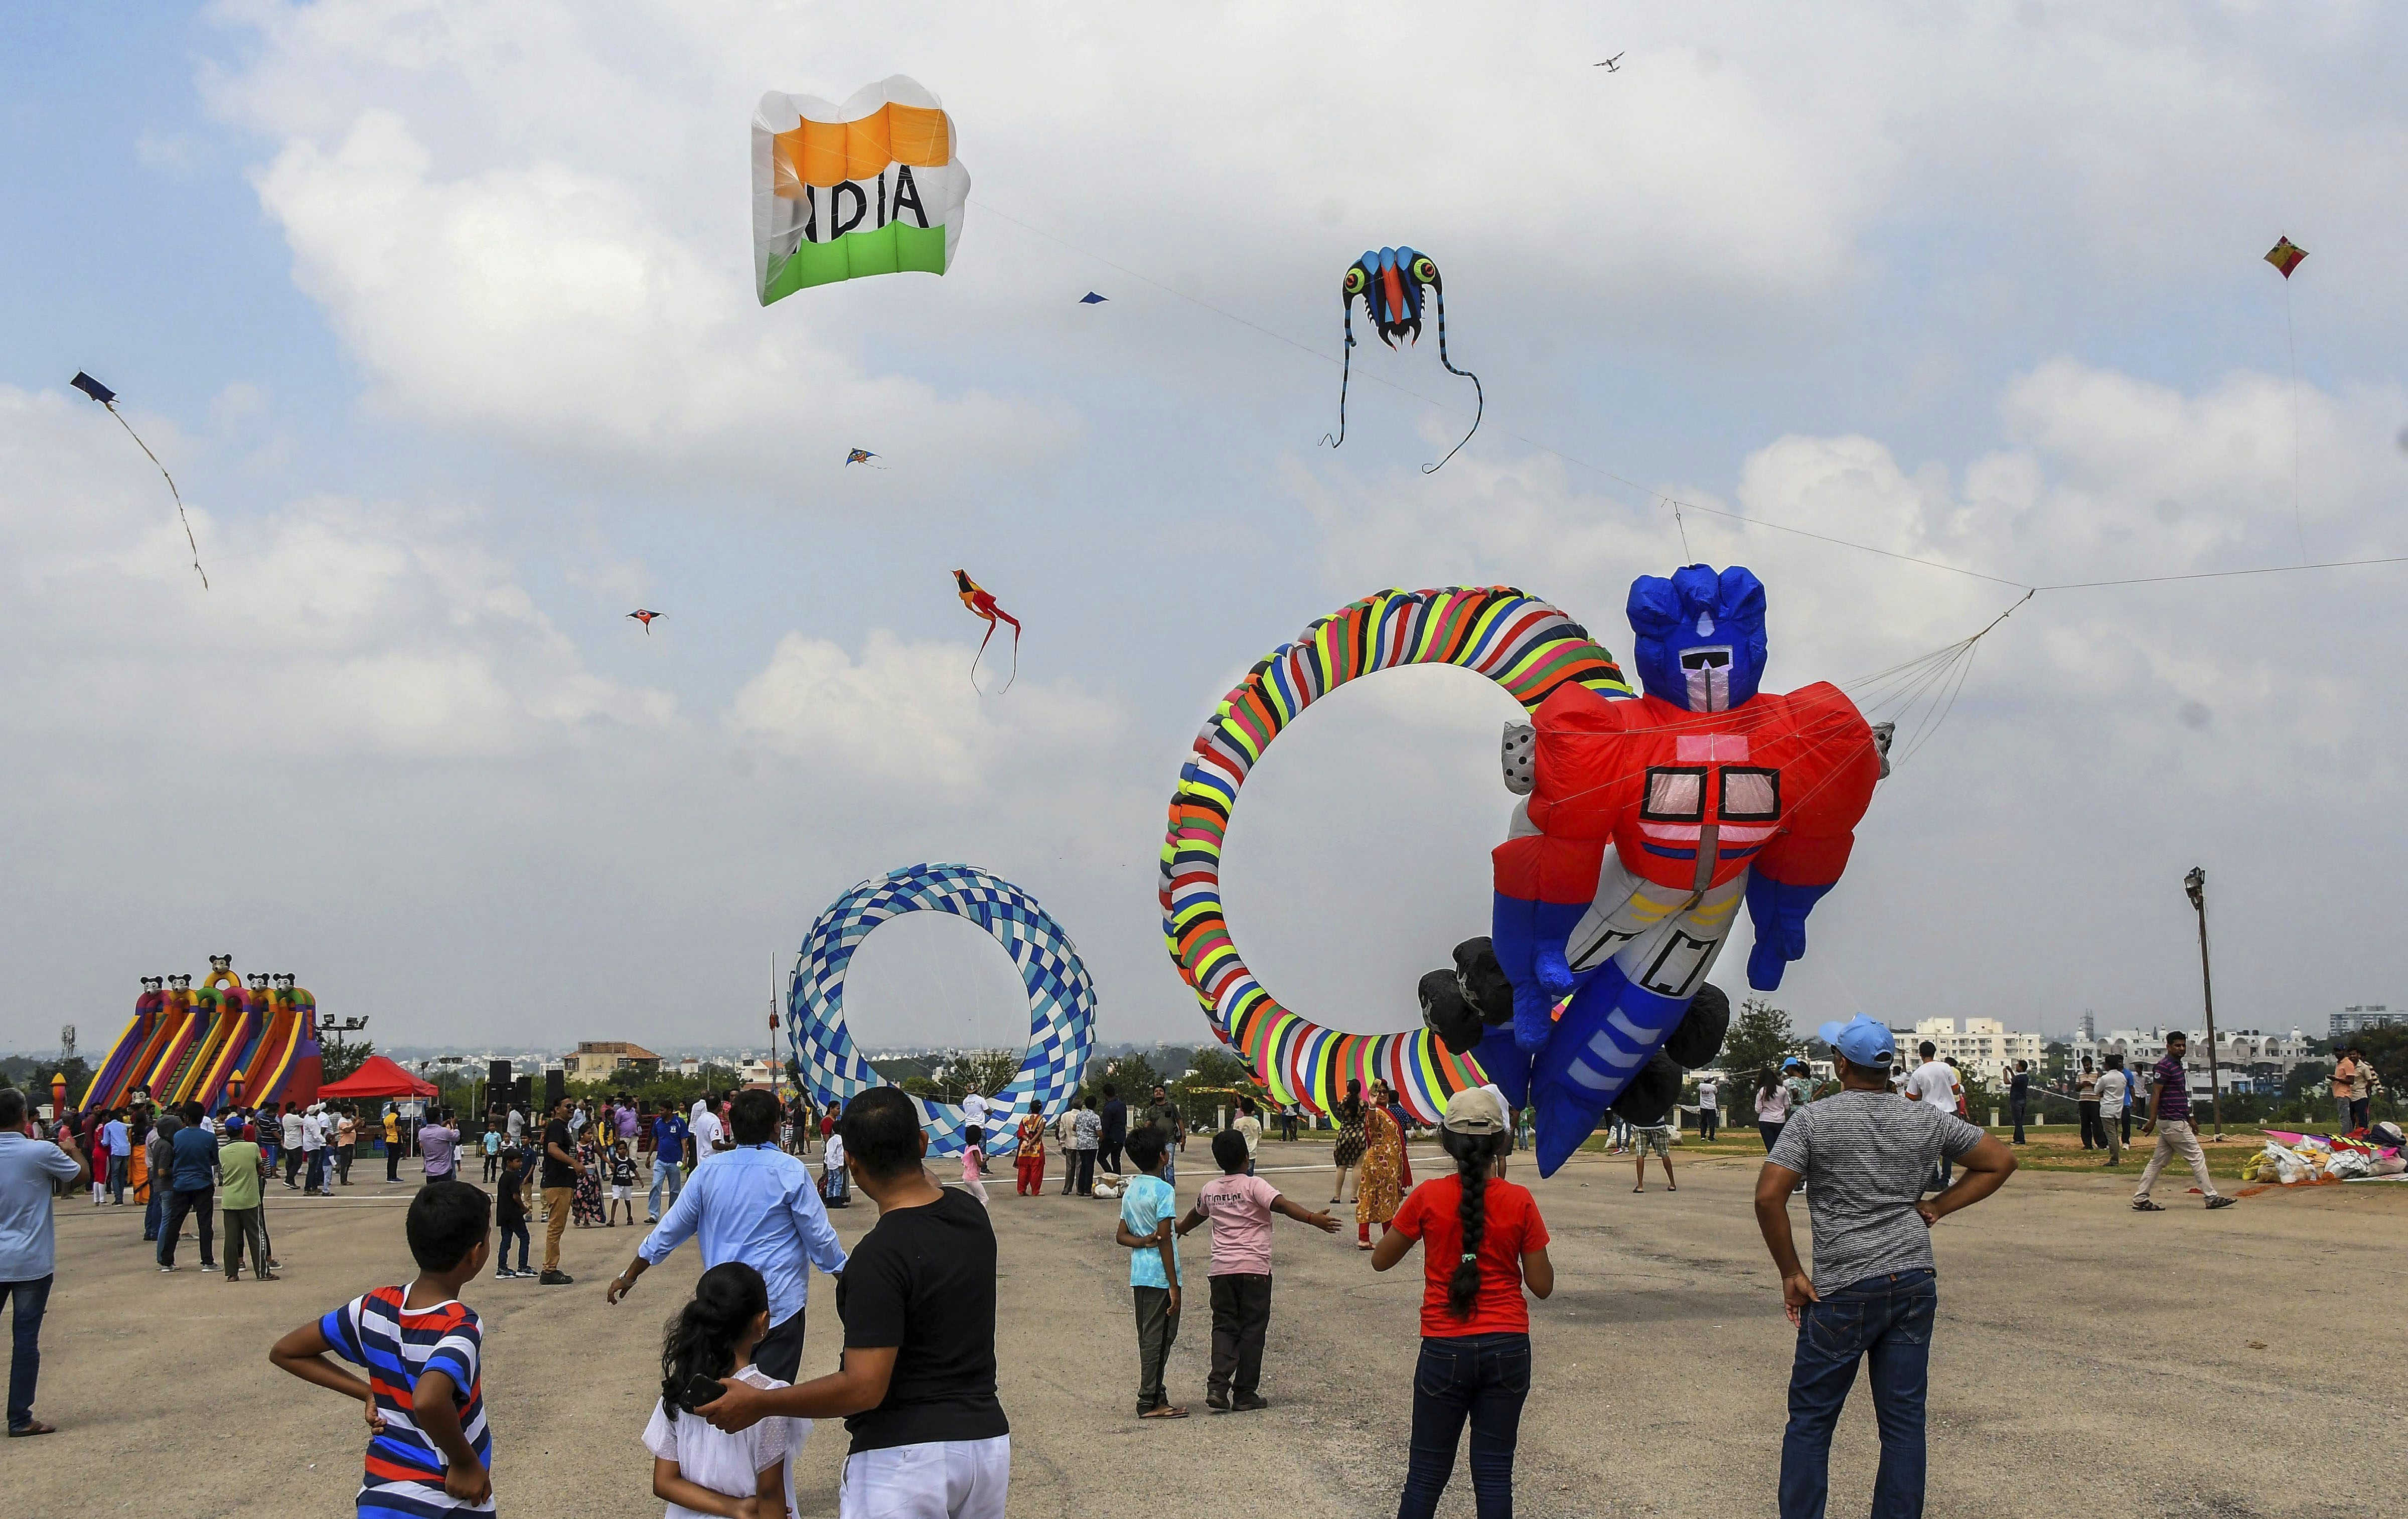 Enthusiasts fly kites of various shapes and sizes during a kite festival organised as part of Dussehra celebrations, at the foothills of Chamundi Hills in Mysuru - PTI